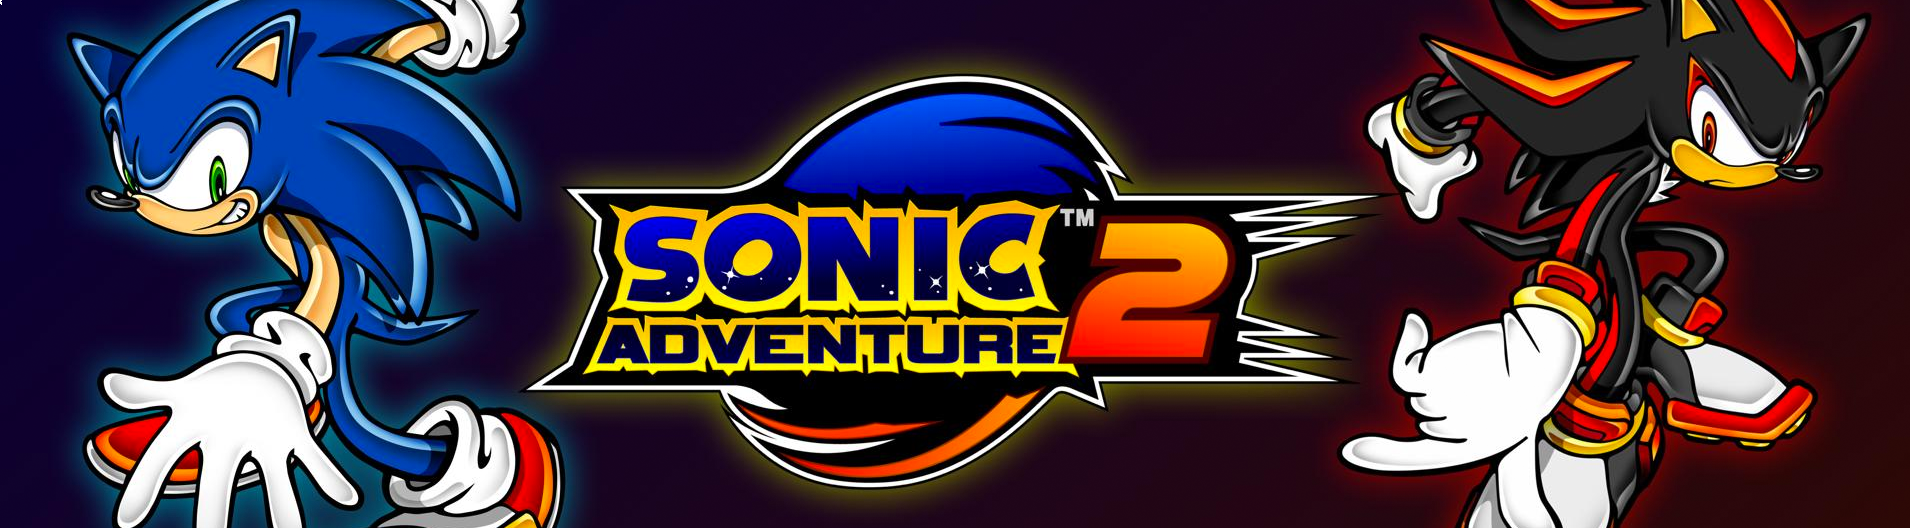 Banner Sonic Adventure 2 Battle